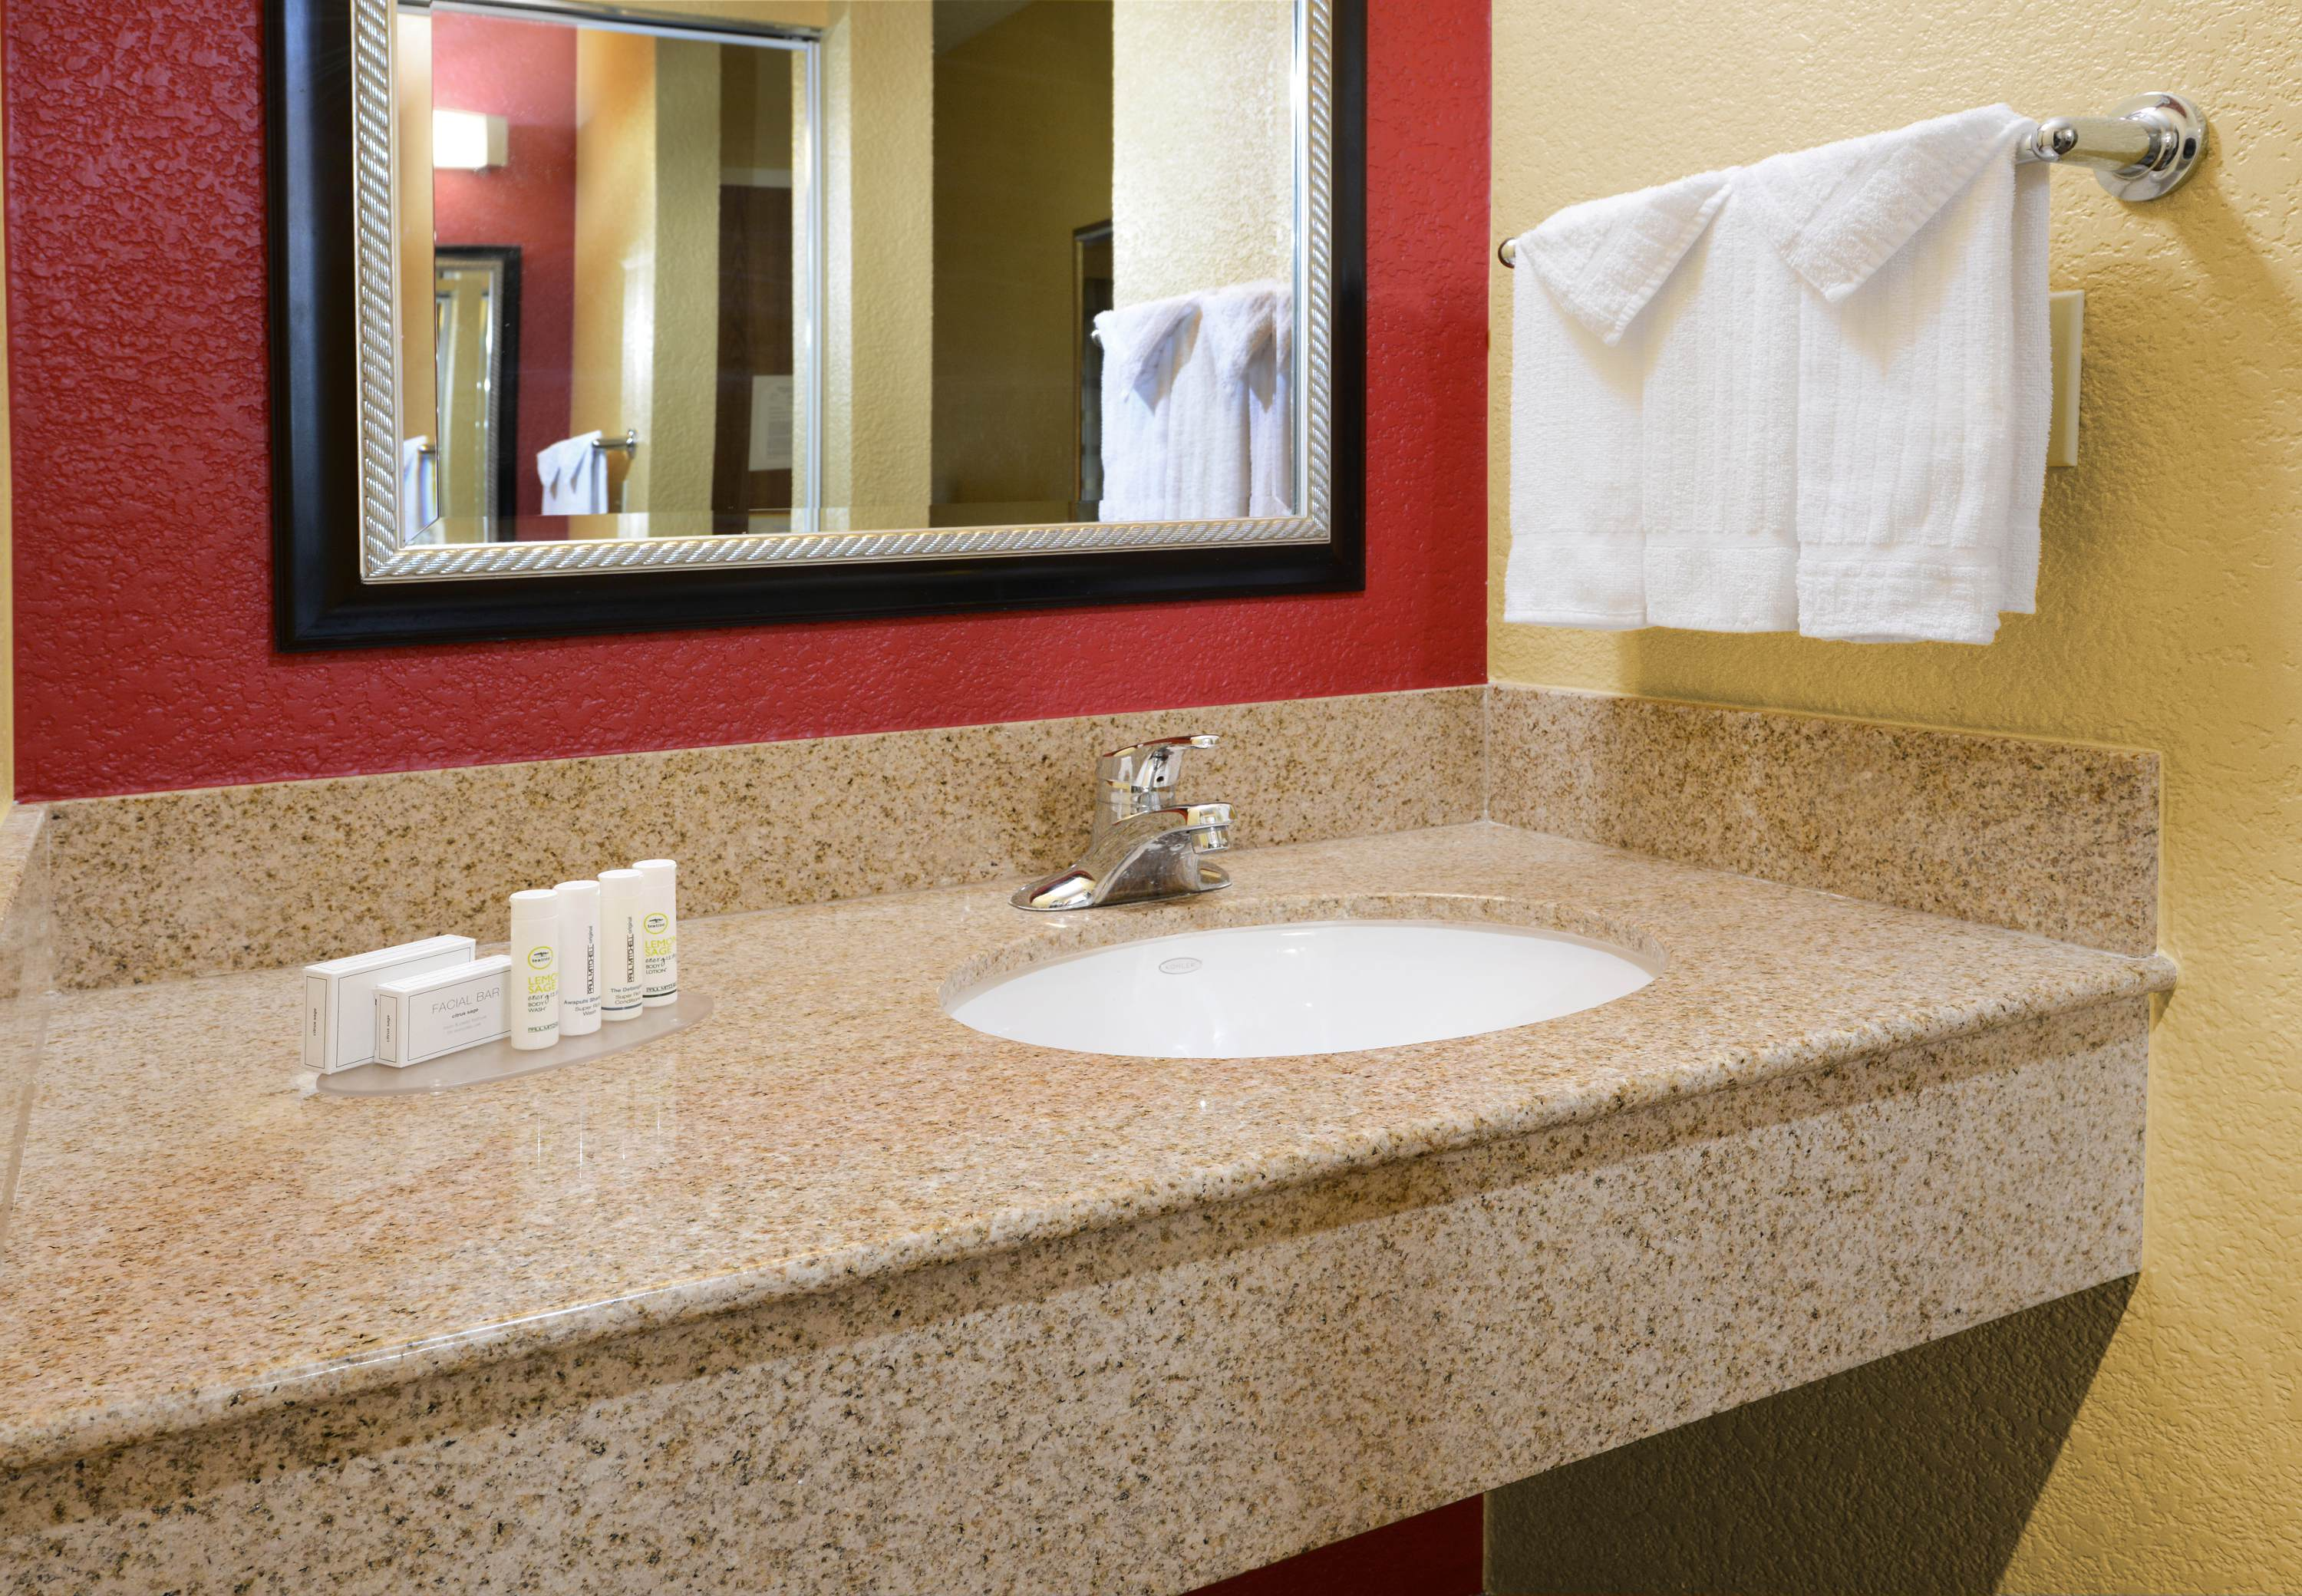 Courtyard by Marriott Fort Worth University Drive image 6